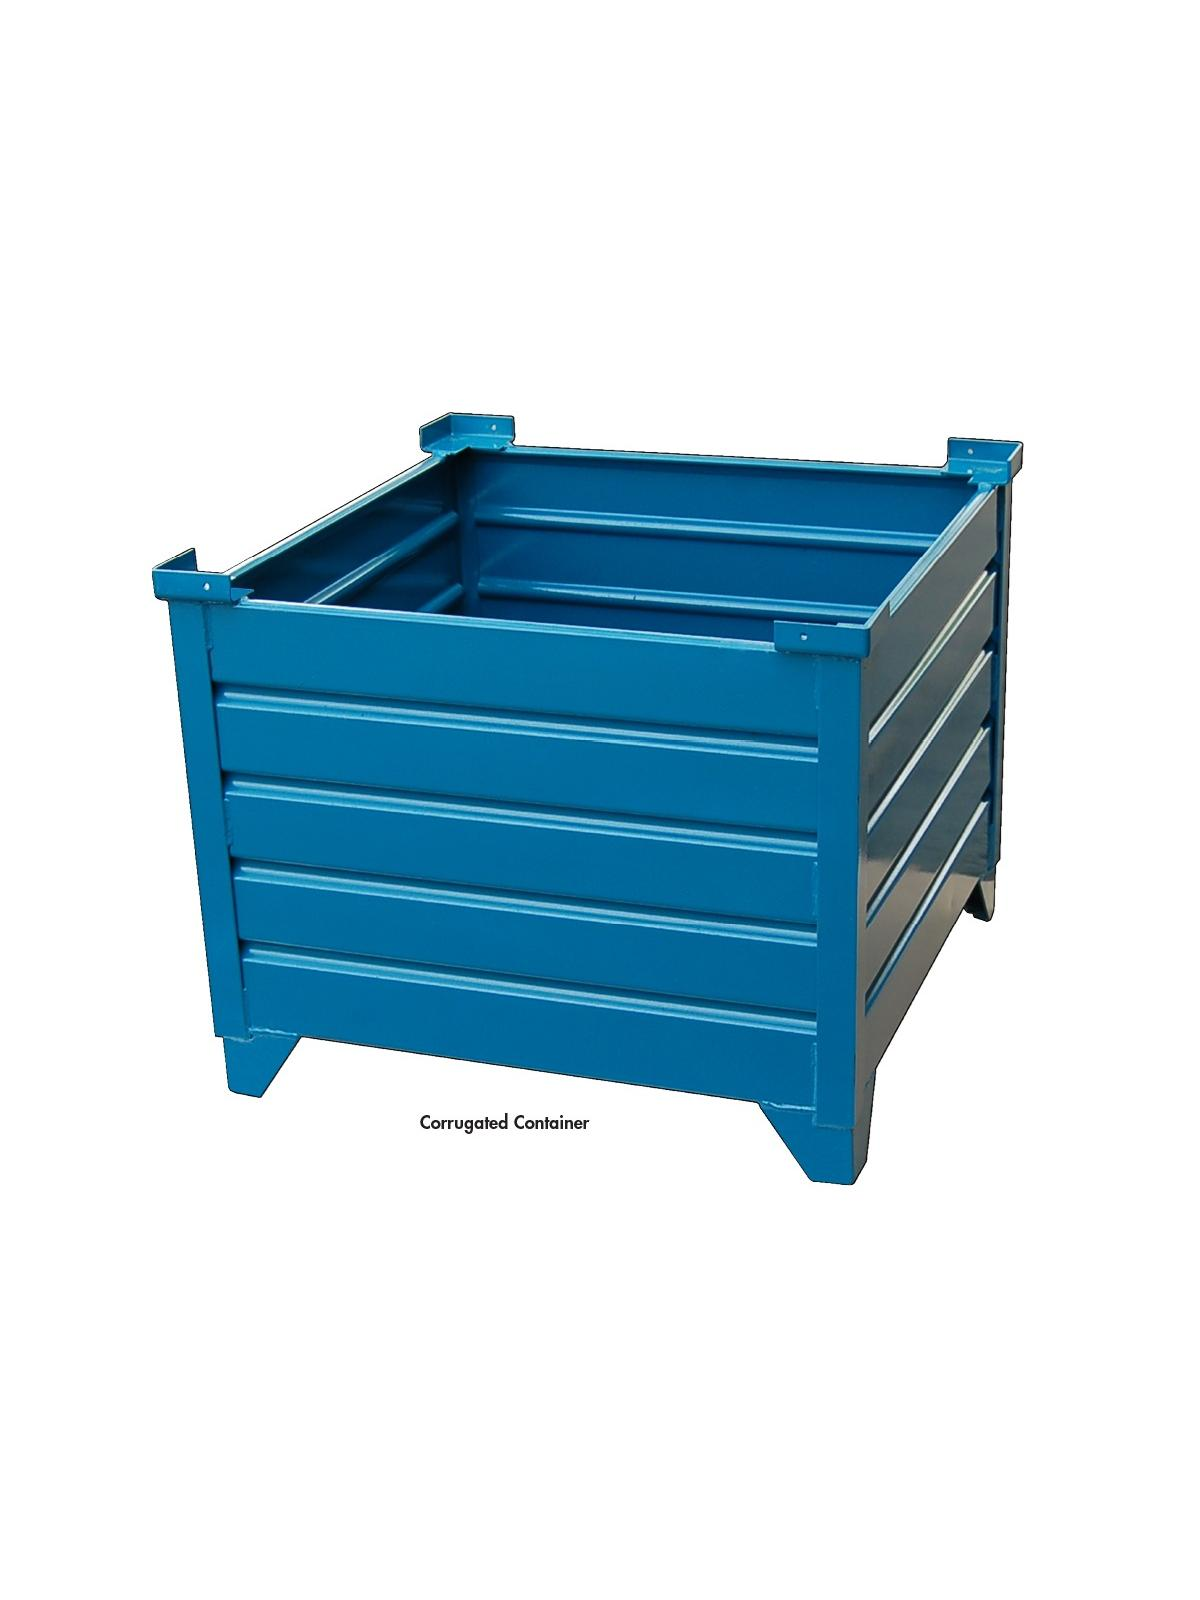 Corrugated Bulk Steel Containers At Nationwide Industrial